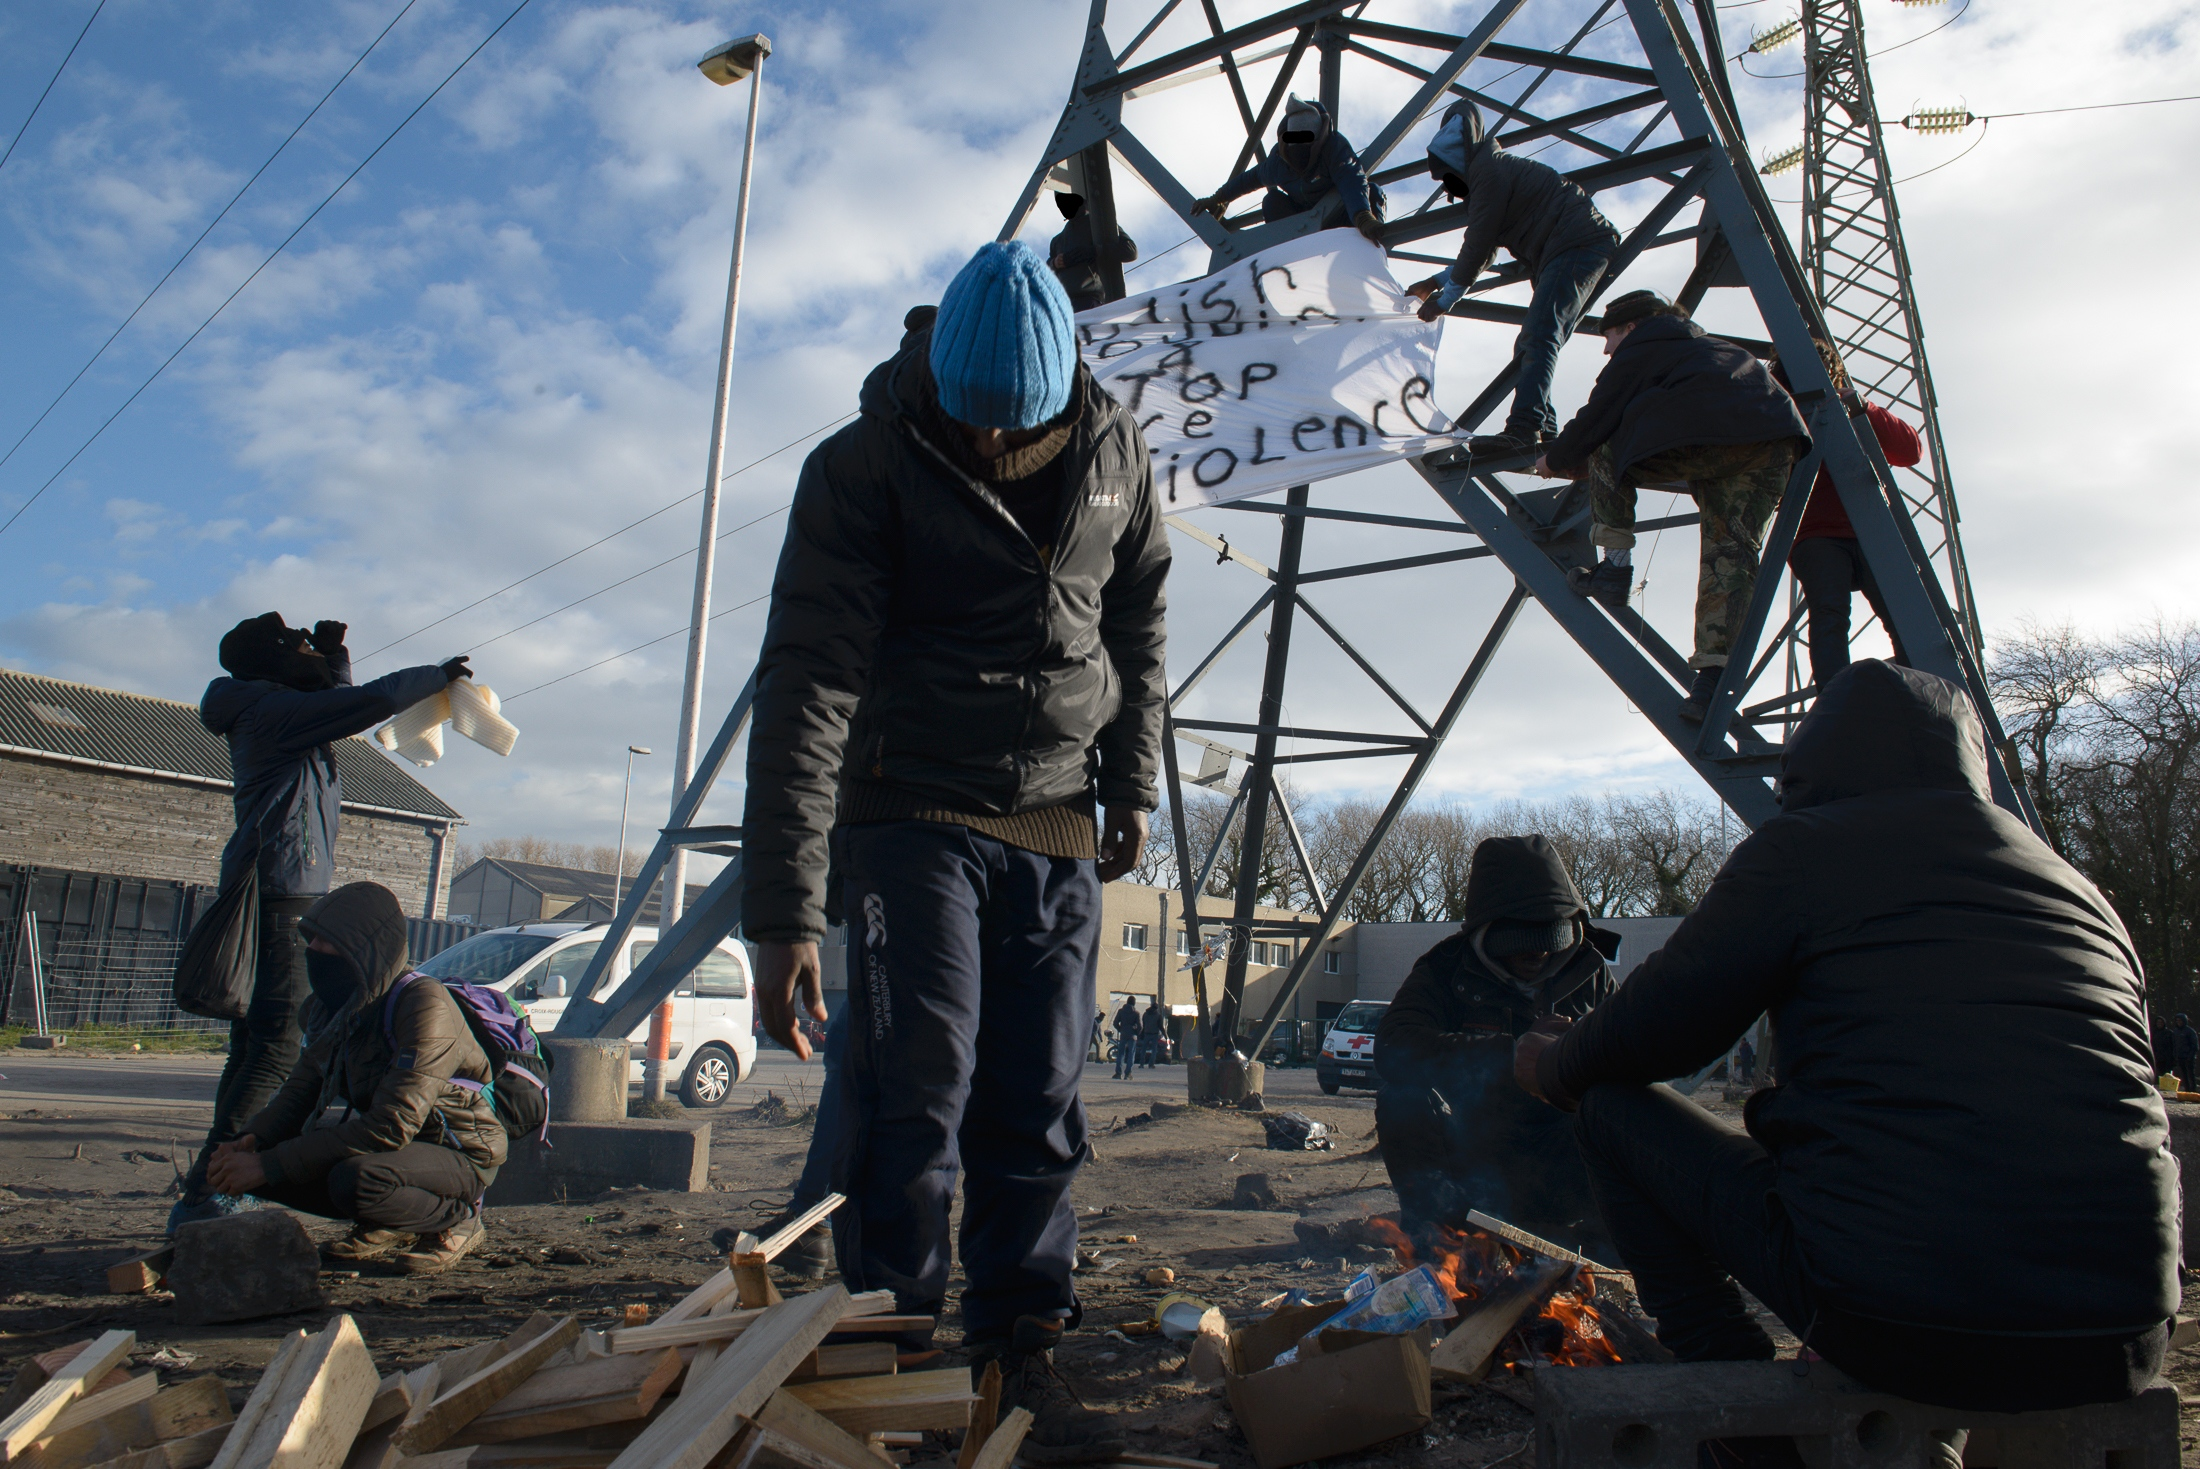 January 16, 2018 - Calais, France. During the visit of French President Emmanuel Macron to Calais homeless migrants living in the Jungle in Calais hung banners and published a joint statement on Facebook to denounce police violence towards them, ask for the end of the Dublin Act and for borders to be open.